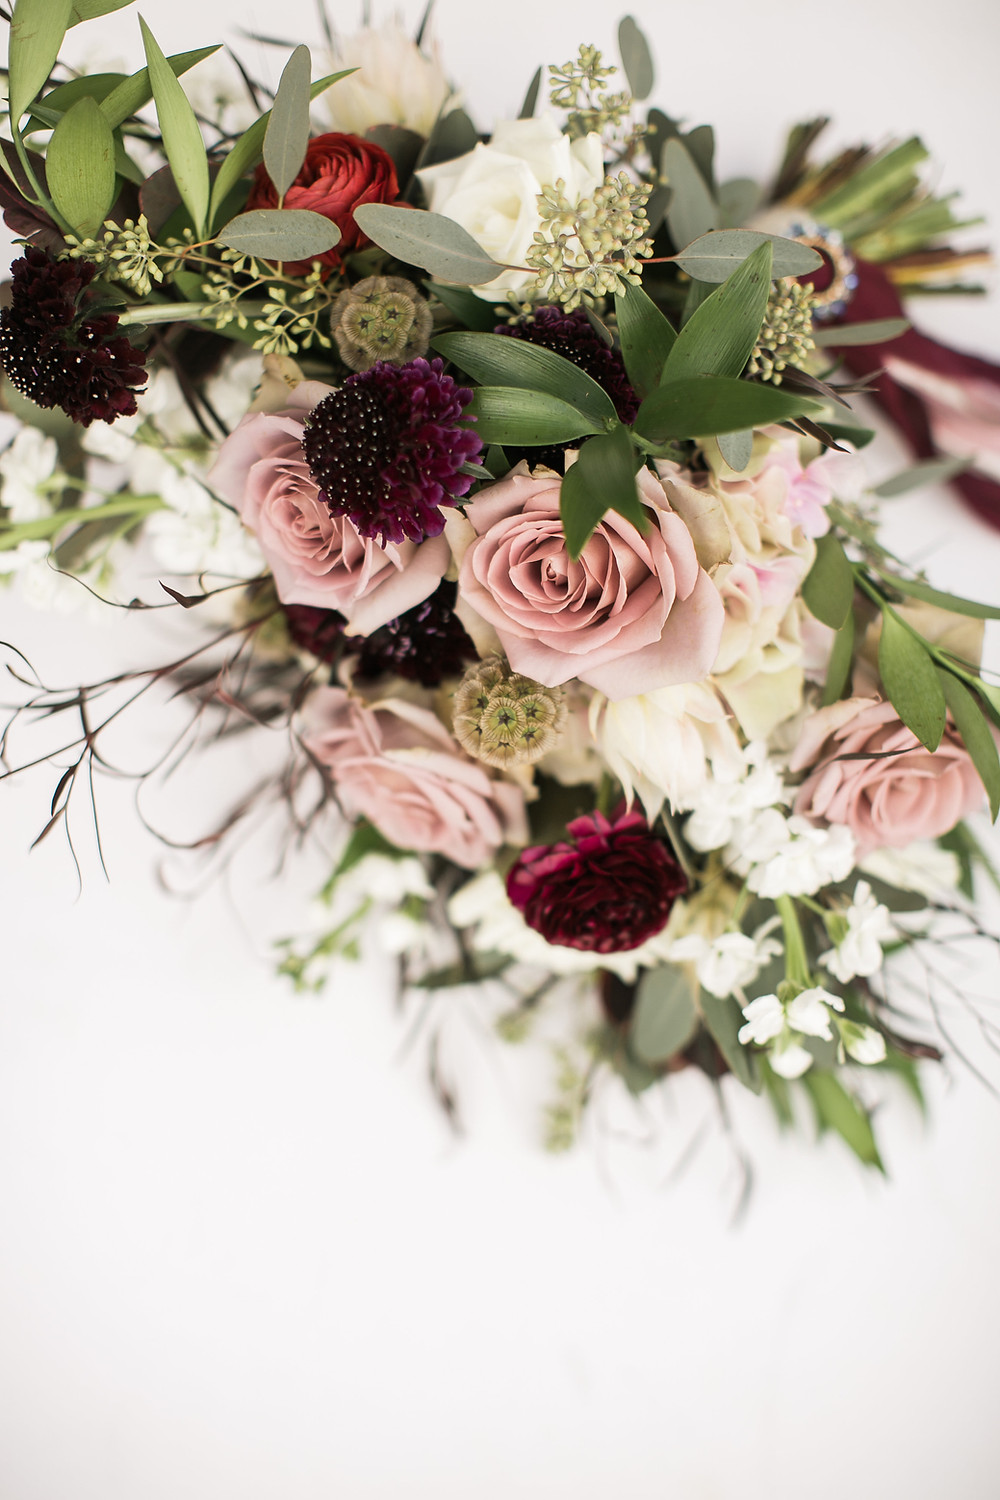 studio bloom iowa wedding florist bridal bouquet in mauve, burgundy, and white with roses, scabiosa, ranunculus, and greenery